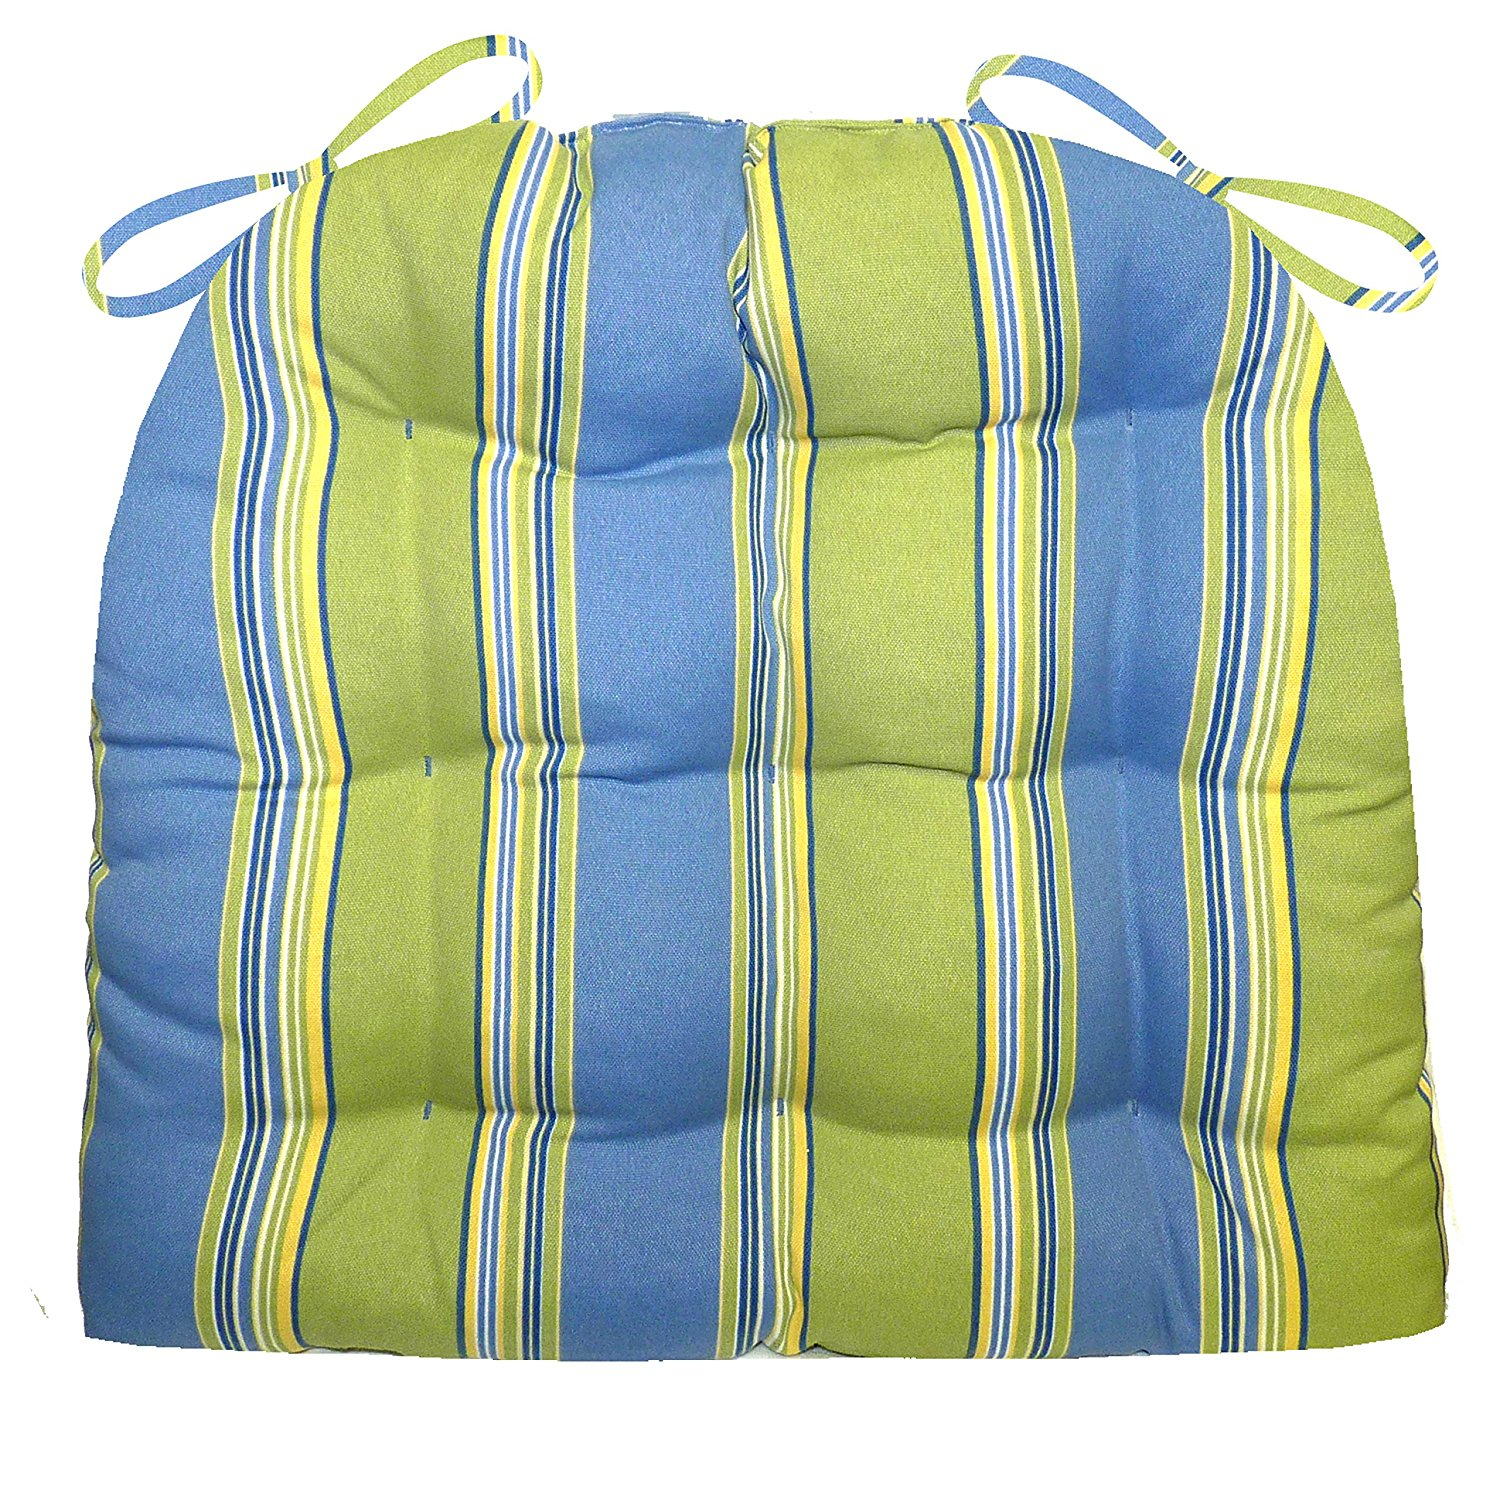 Patio Chair Cushion - Cabana Stripe - Indoor / Outdoor, Mildew Resistant, Fade Resistant - Reversible, Tufted, U Shaped Chair Pad, Box Edge Seat Cushion, Latex Foam Fill - Outdoor Furniture Replacement Cushion for Patio Armchair (Hampton Bay Blue, Medium [with Ties])